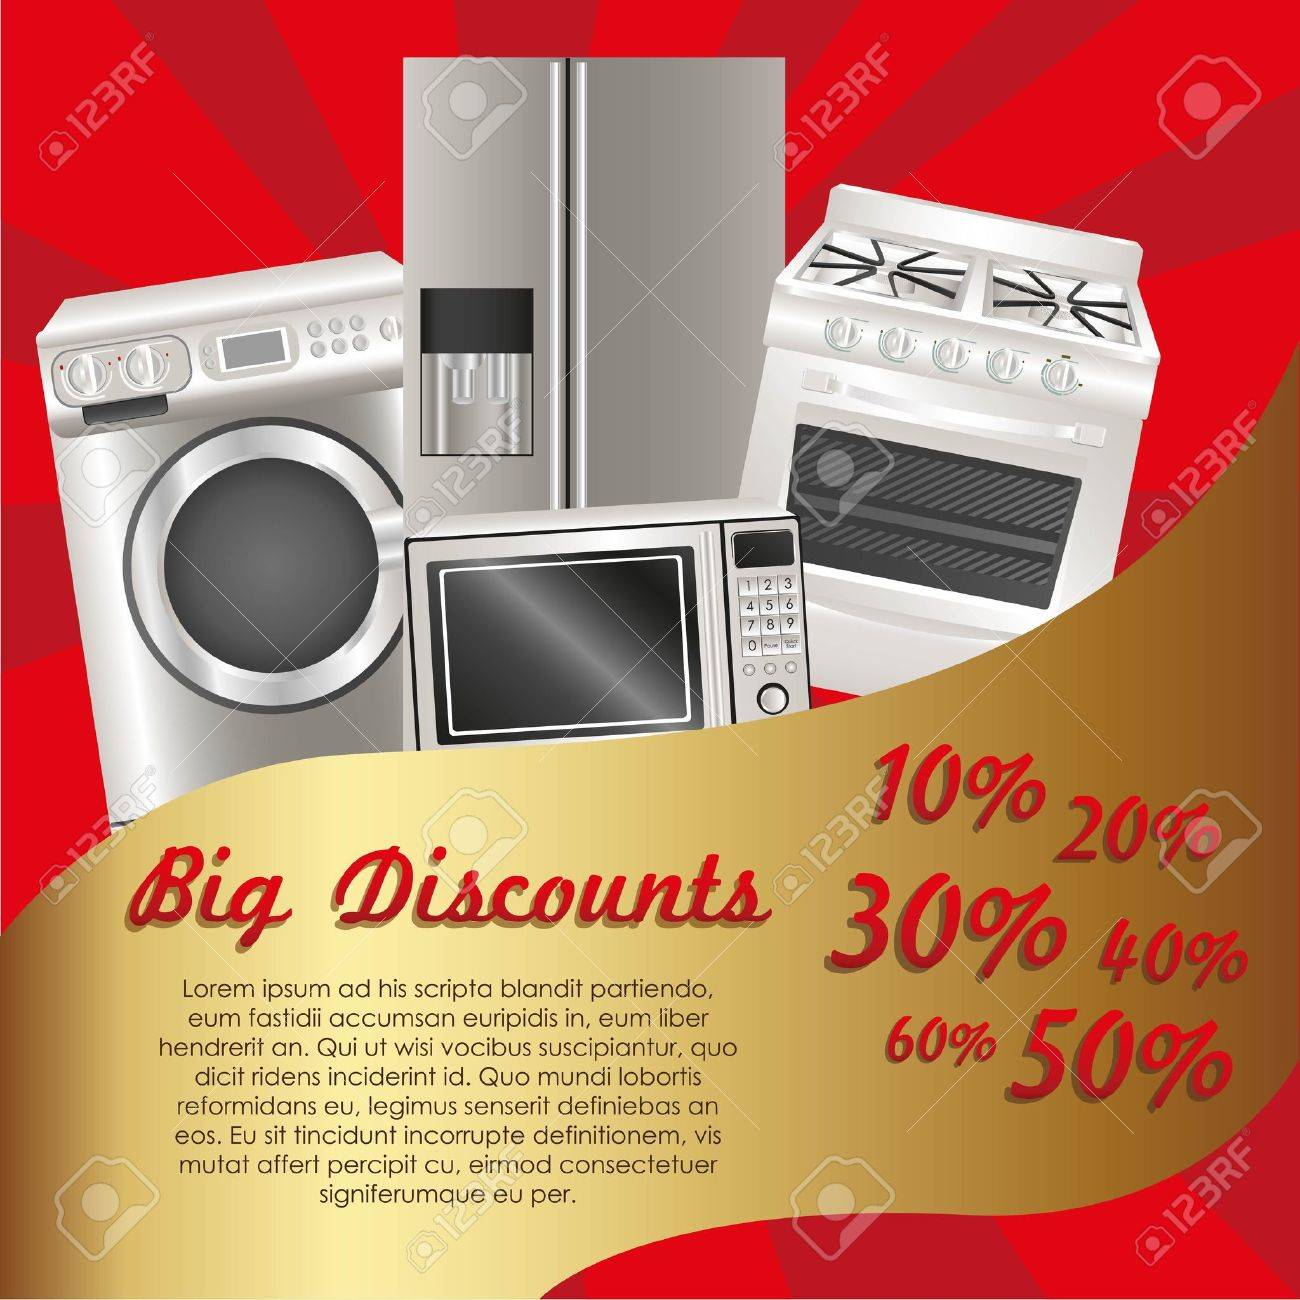 flyer discount appliances contains washing machine stove flyer discount appliances contains washing machine stove microwave and refrigerator stock vector